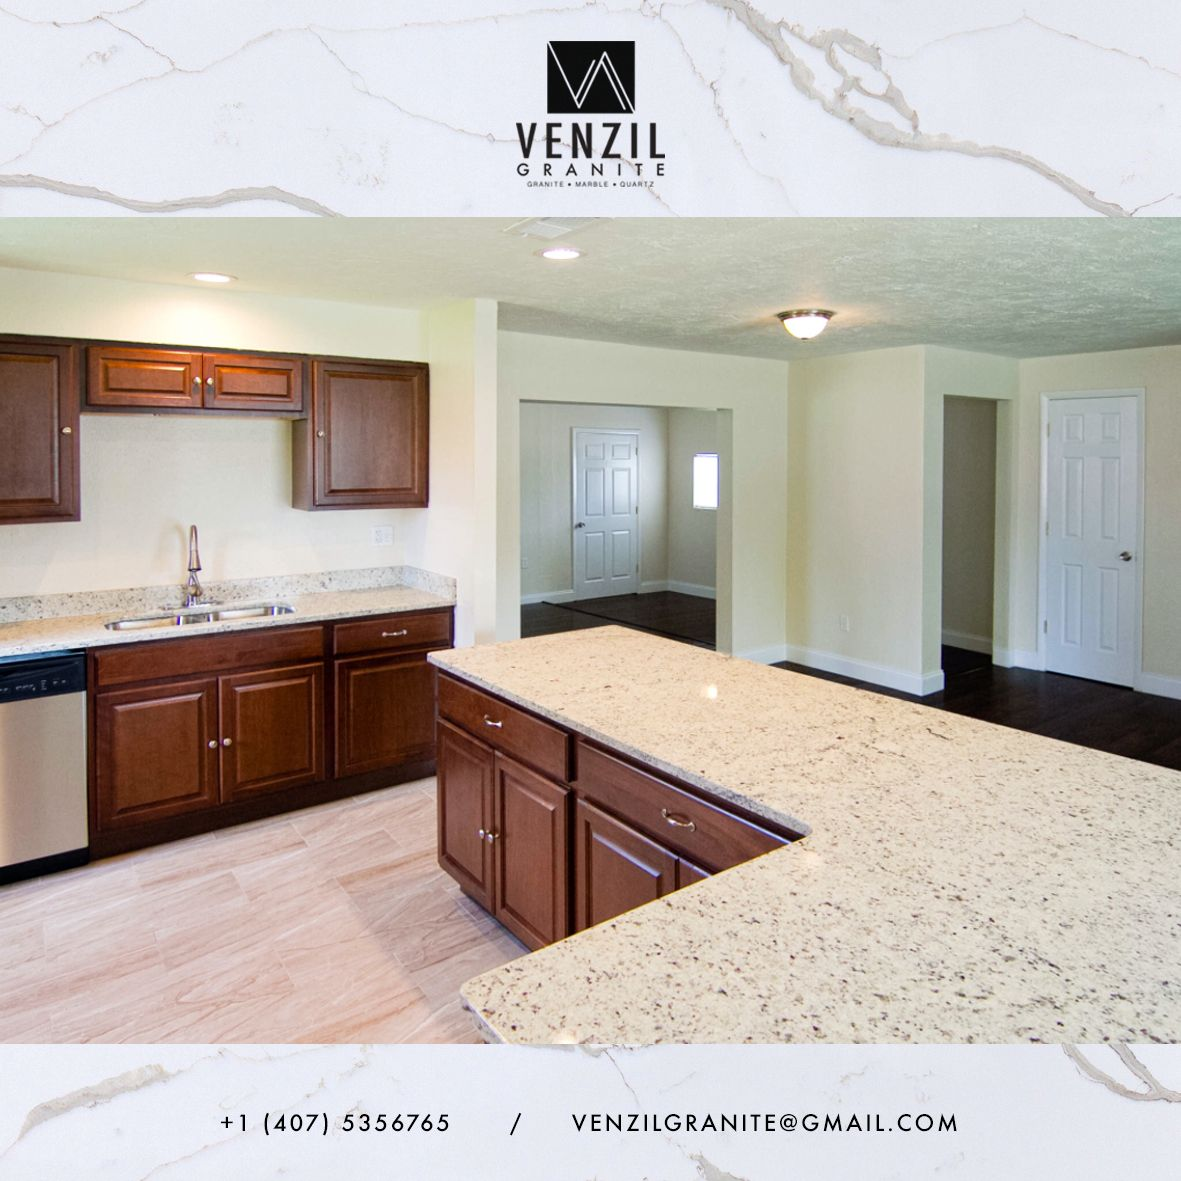 Dallas White Granite / Kitchen Countertop Made By Team Venzil. We Fabricate  And Install Kitchen Countertops, Vanities Or Any Project You May Have.